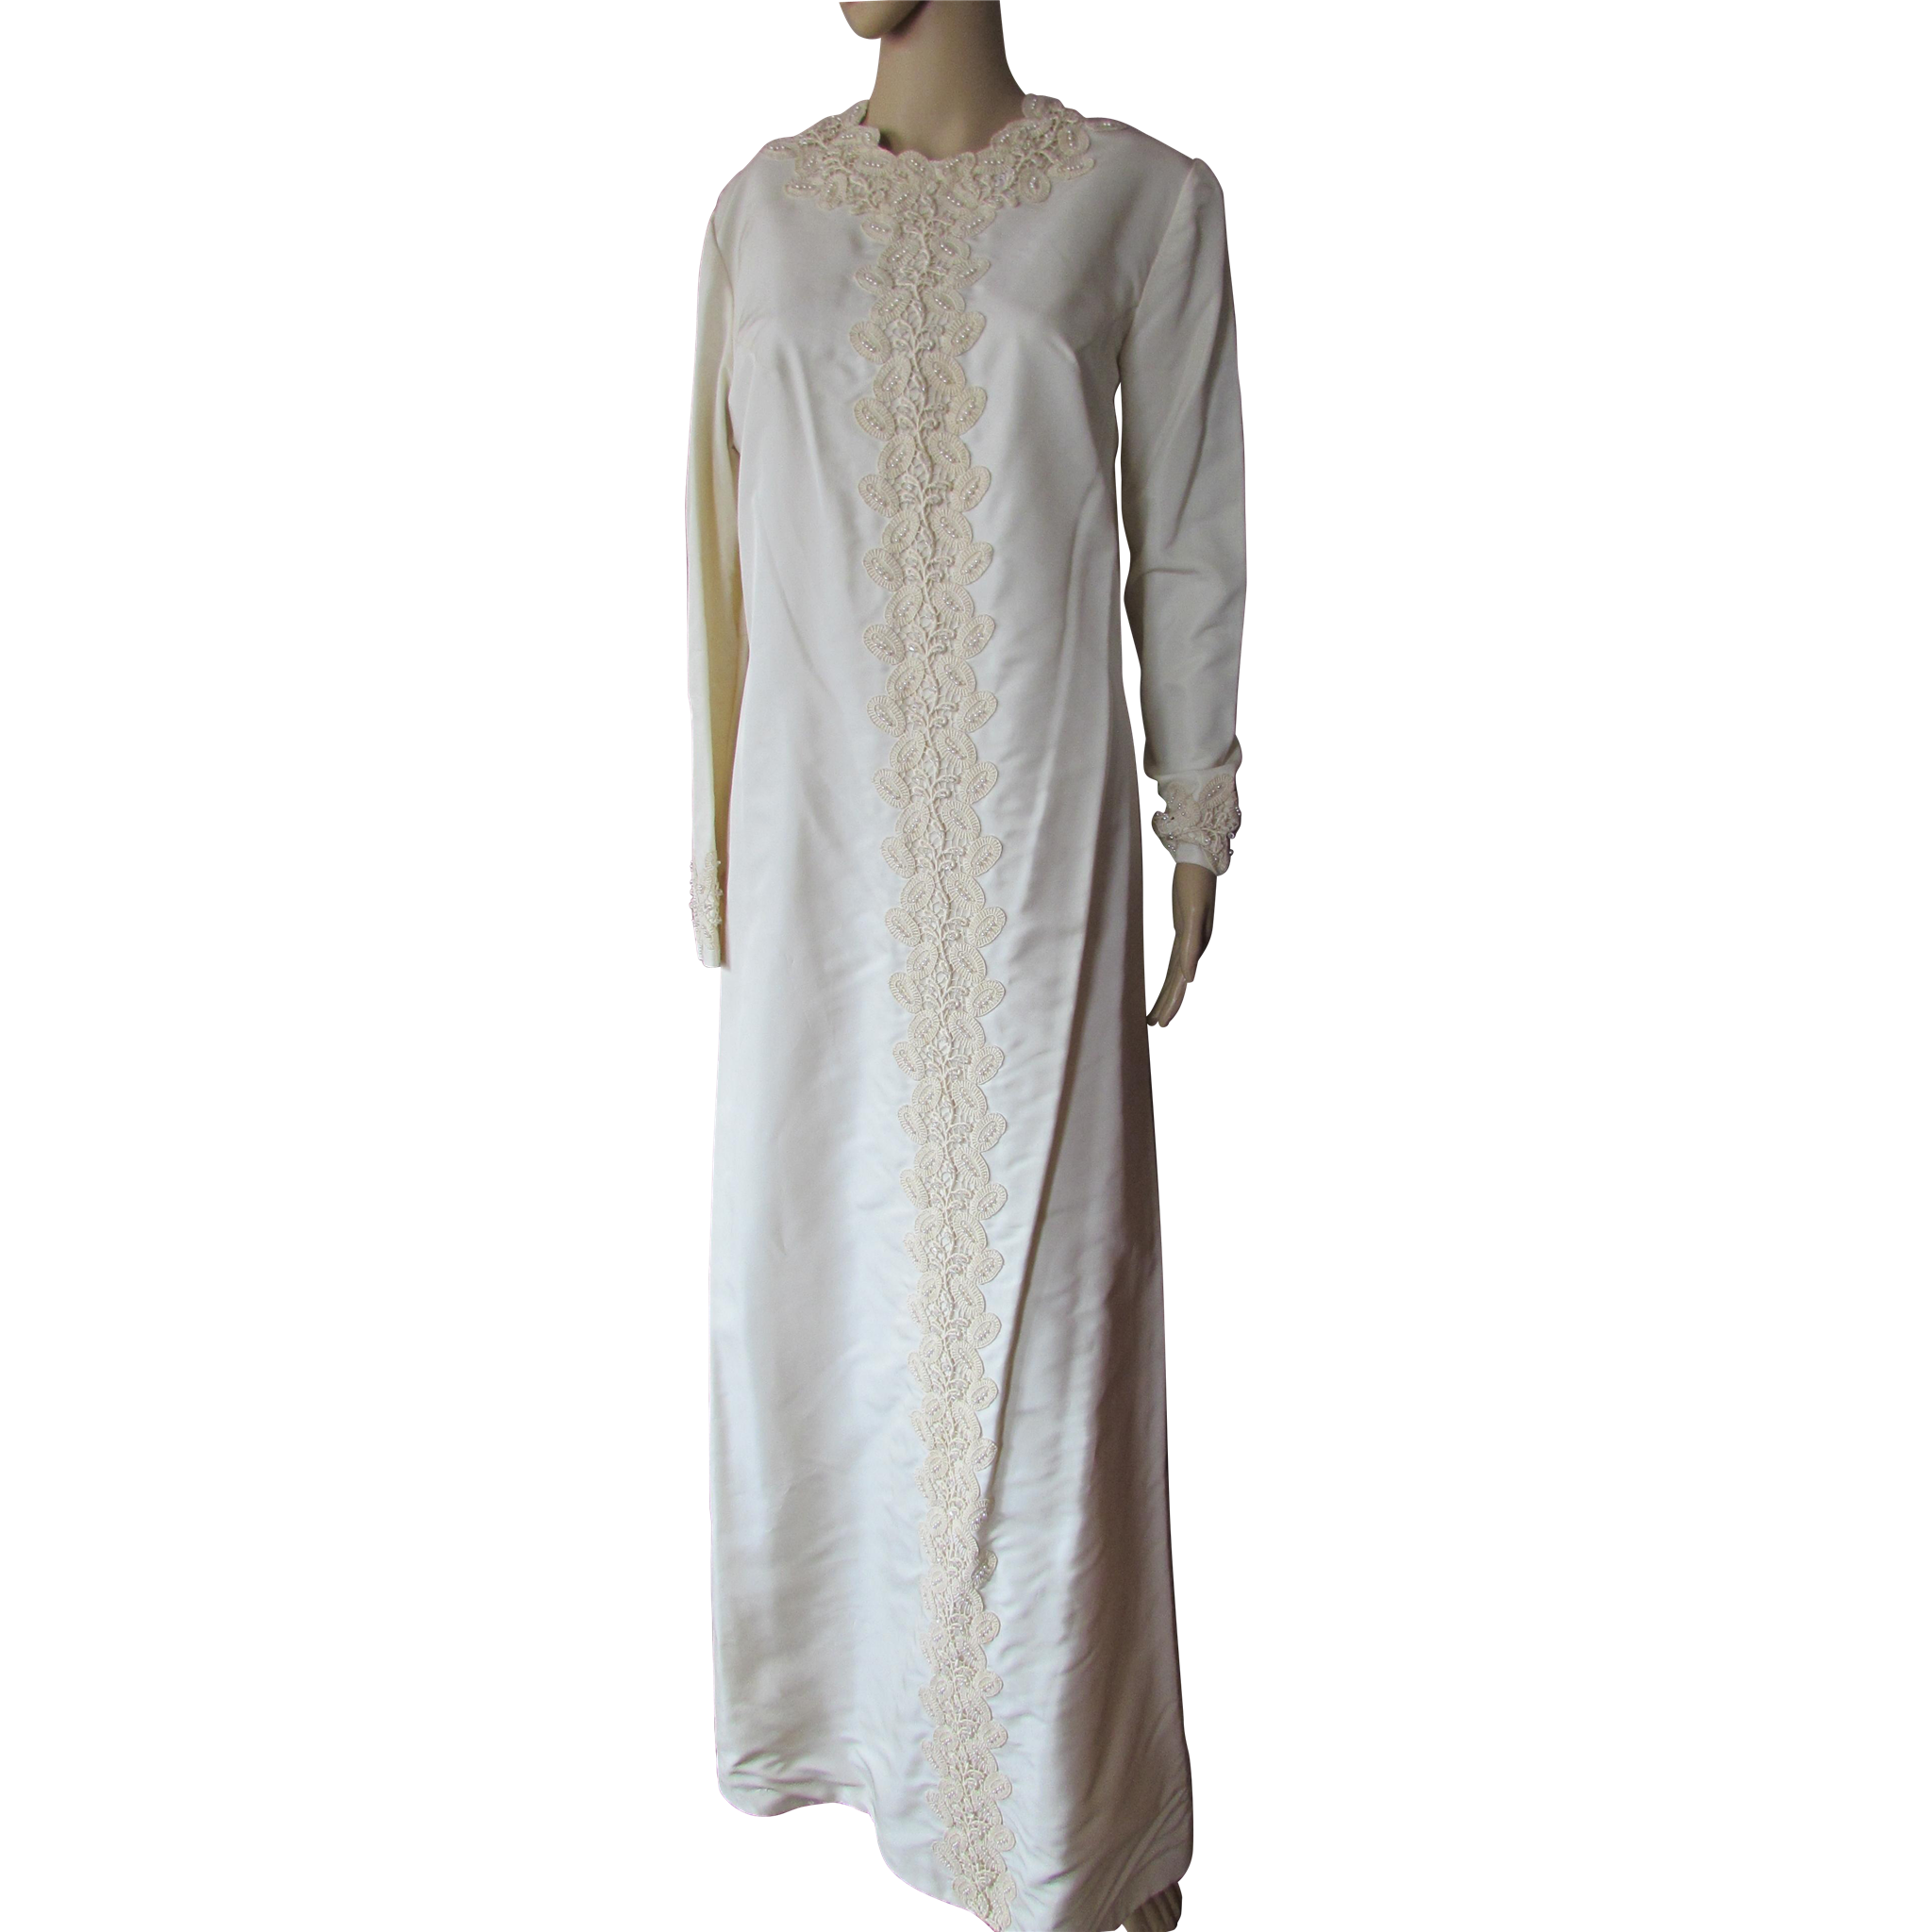 Vintage 1970 Era Wedding Dress in Ivory Tone with Lace Embellishment Contessa Bridals